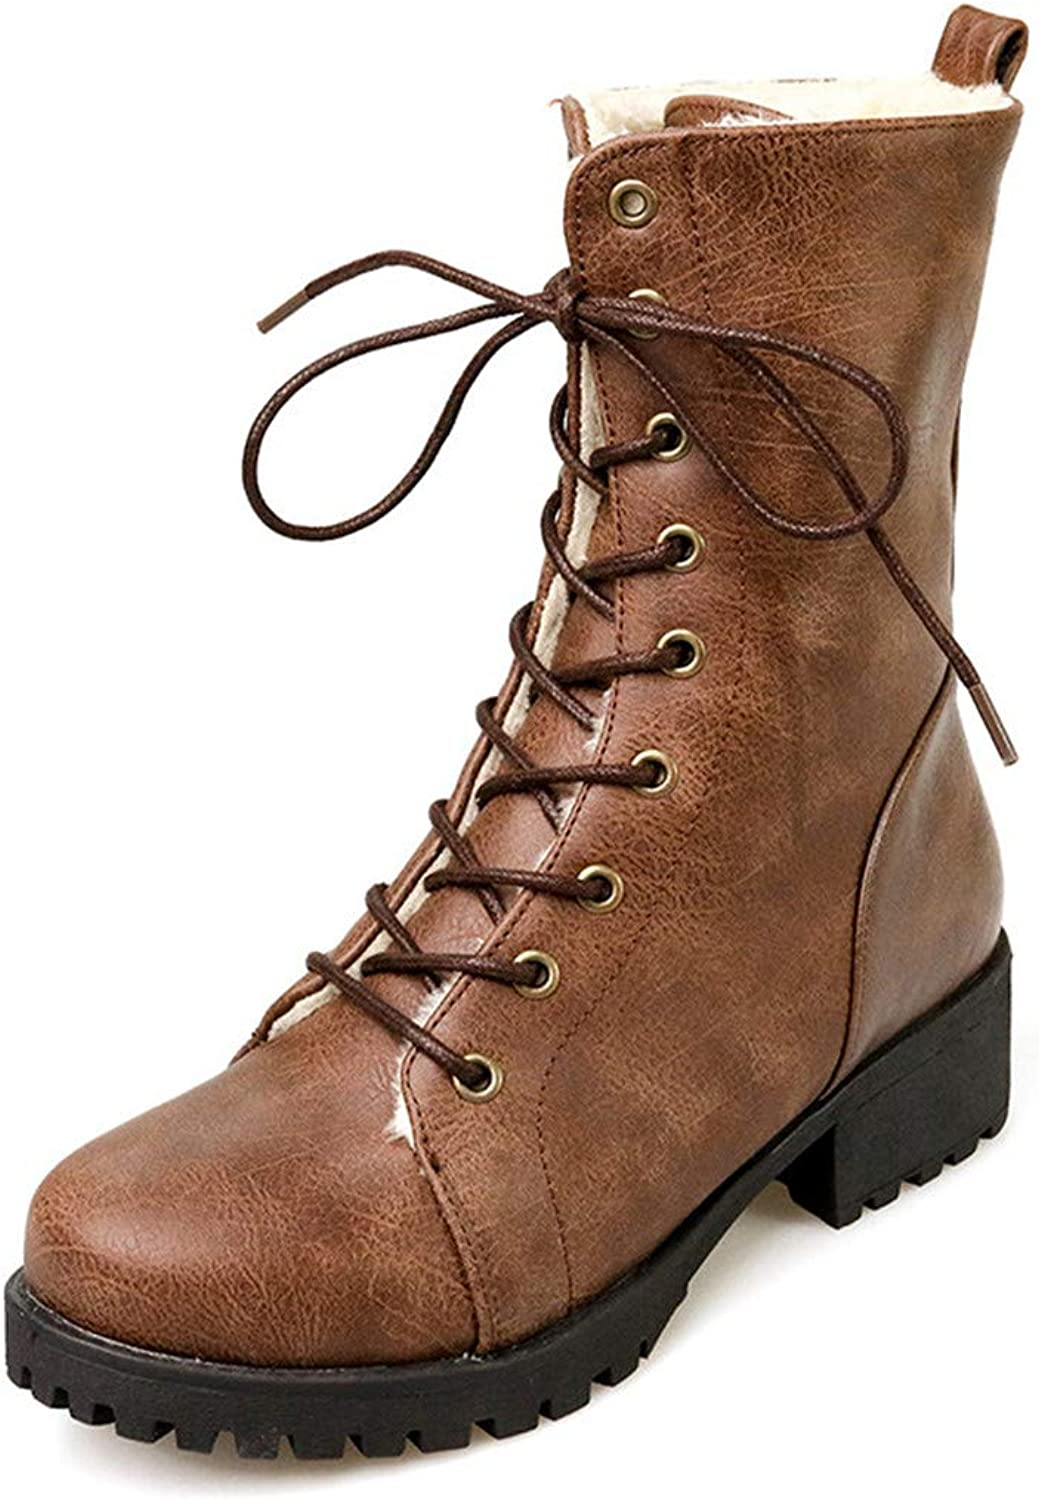 R-Anketsy Women Ankle Boots Vintage Soft Leather Lace Up Ladies Motorcycle Boots Short Fur Snow